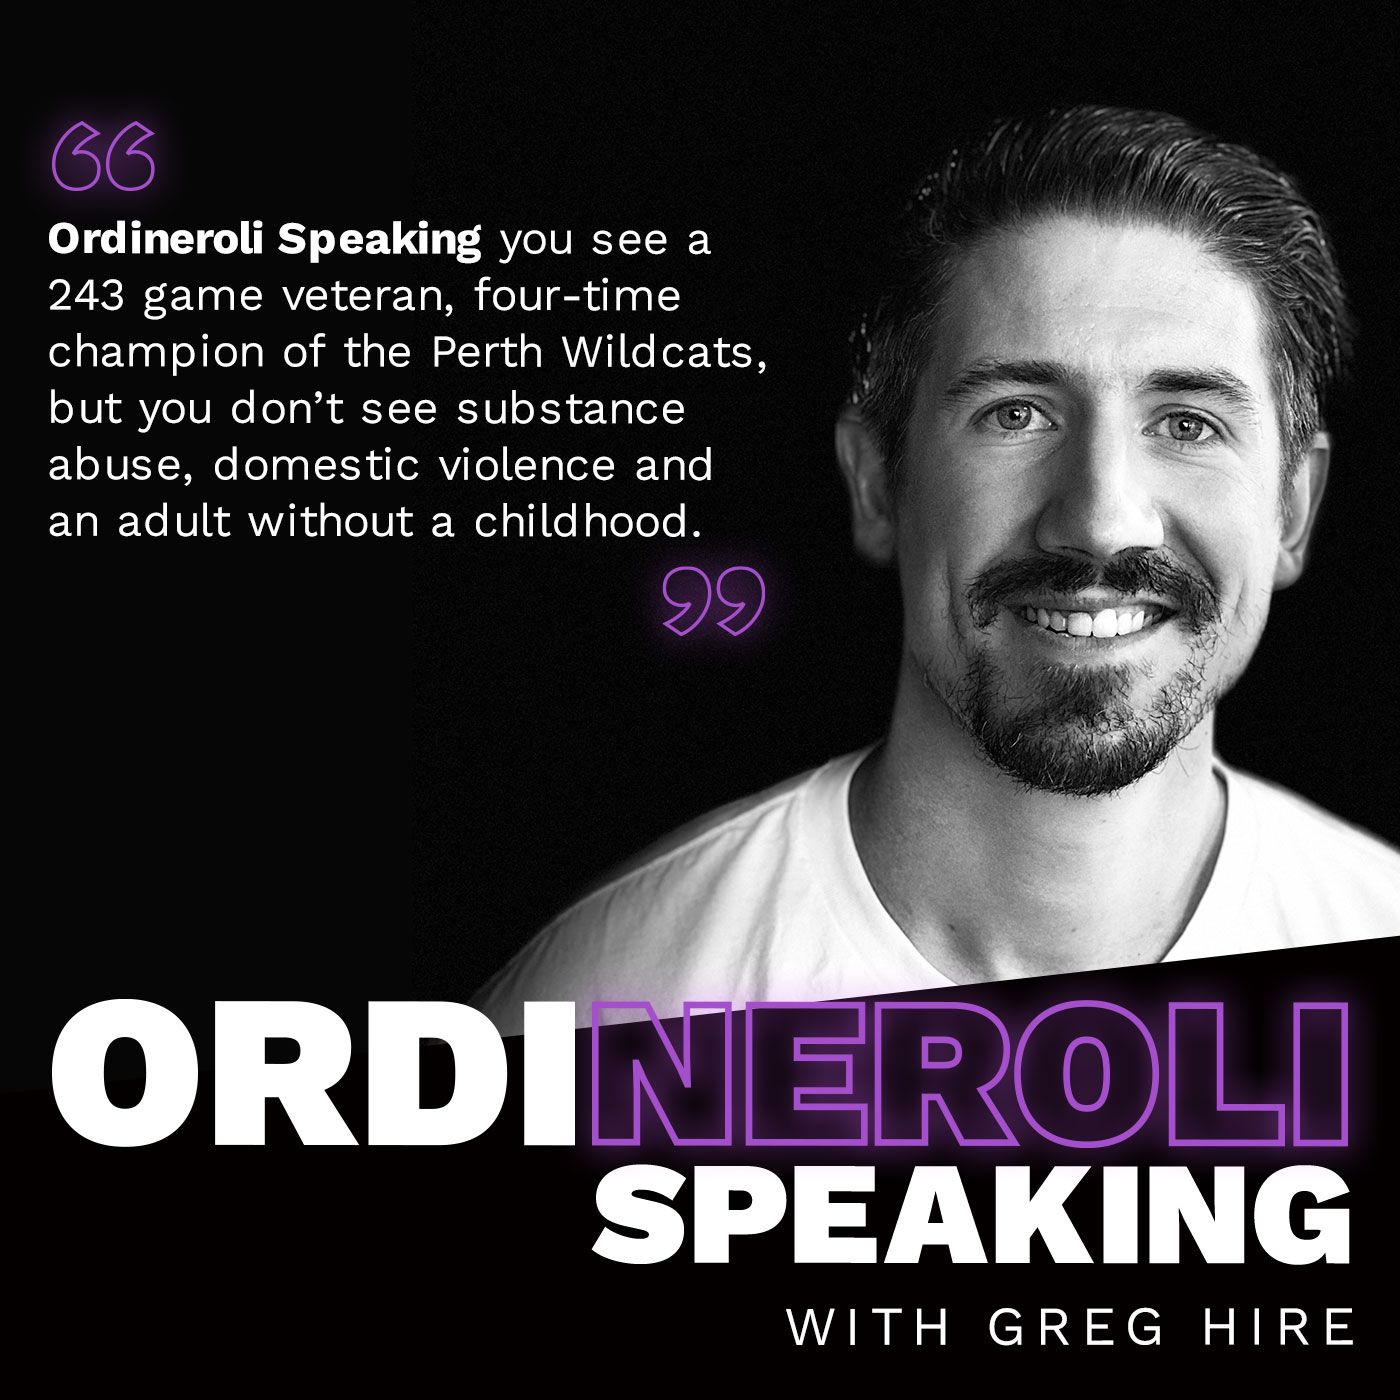 Greg Hire - Ordineroli Speaking